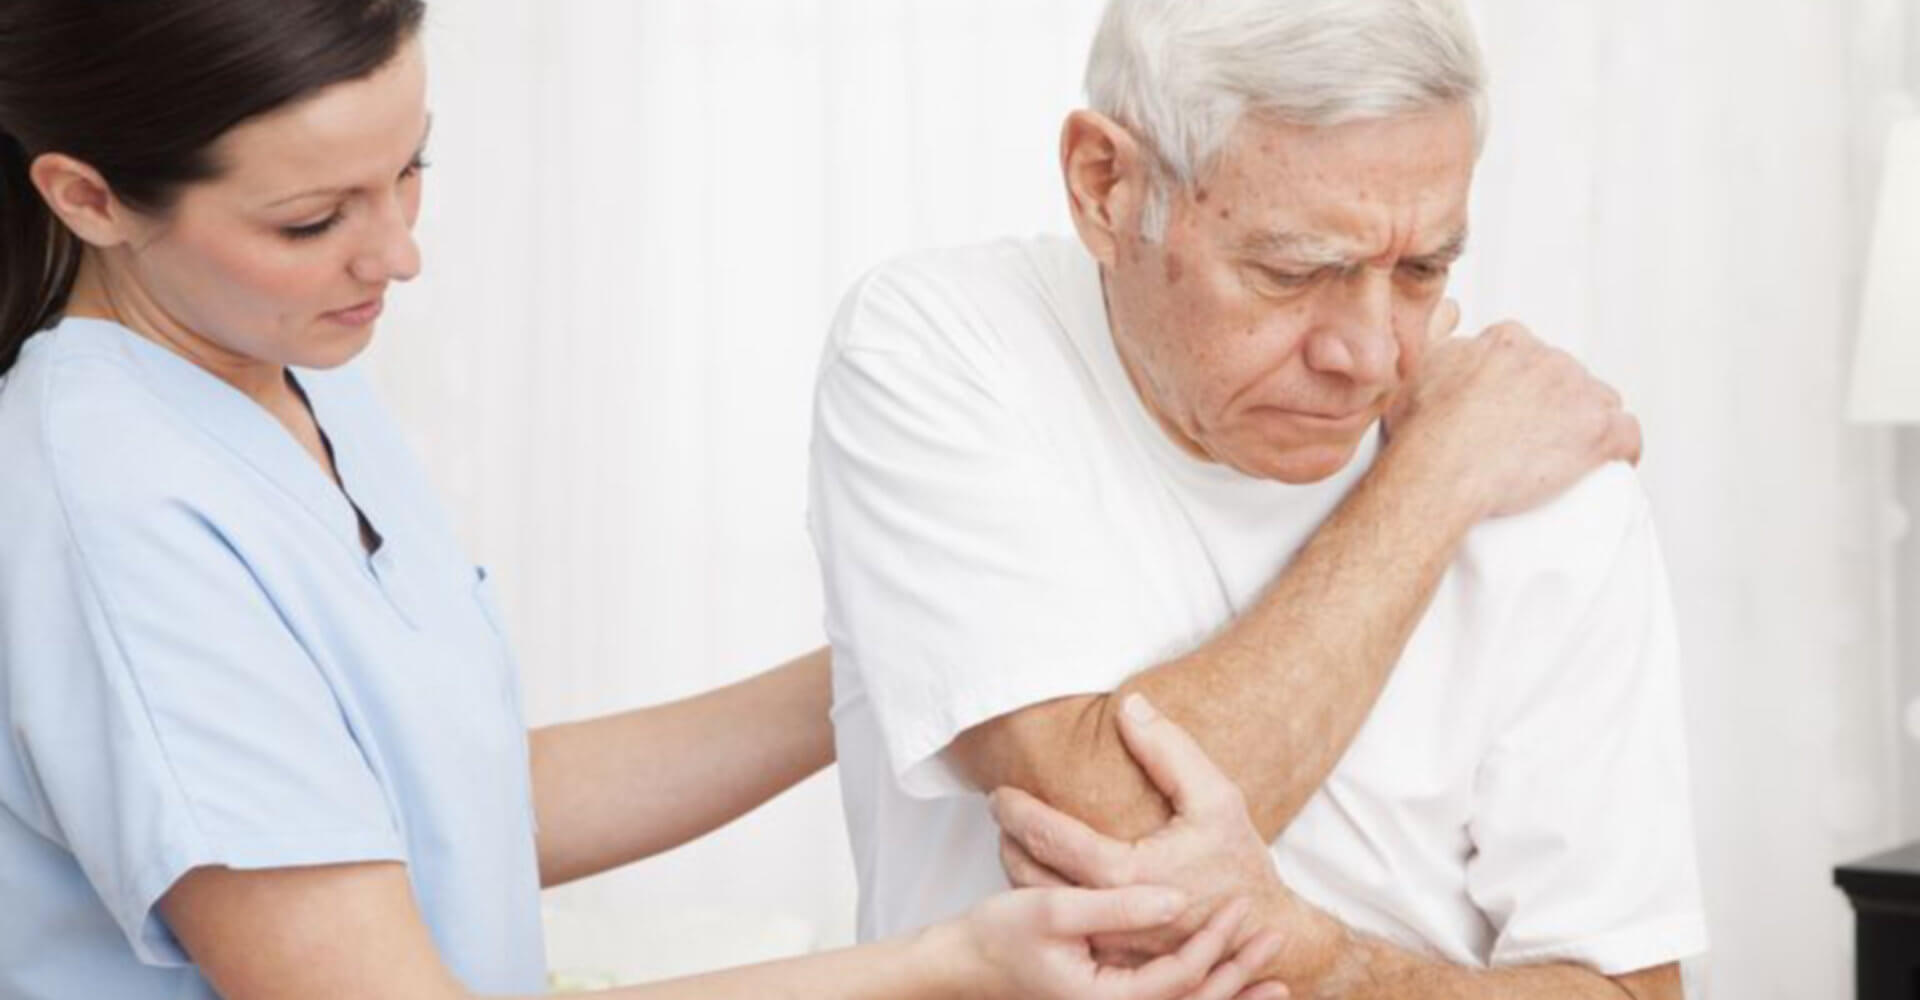 nurse comforting an old man who is ill